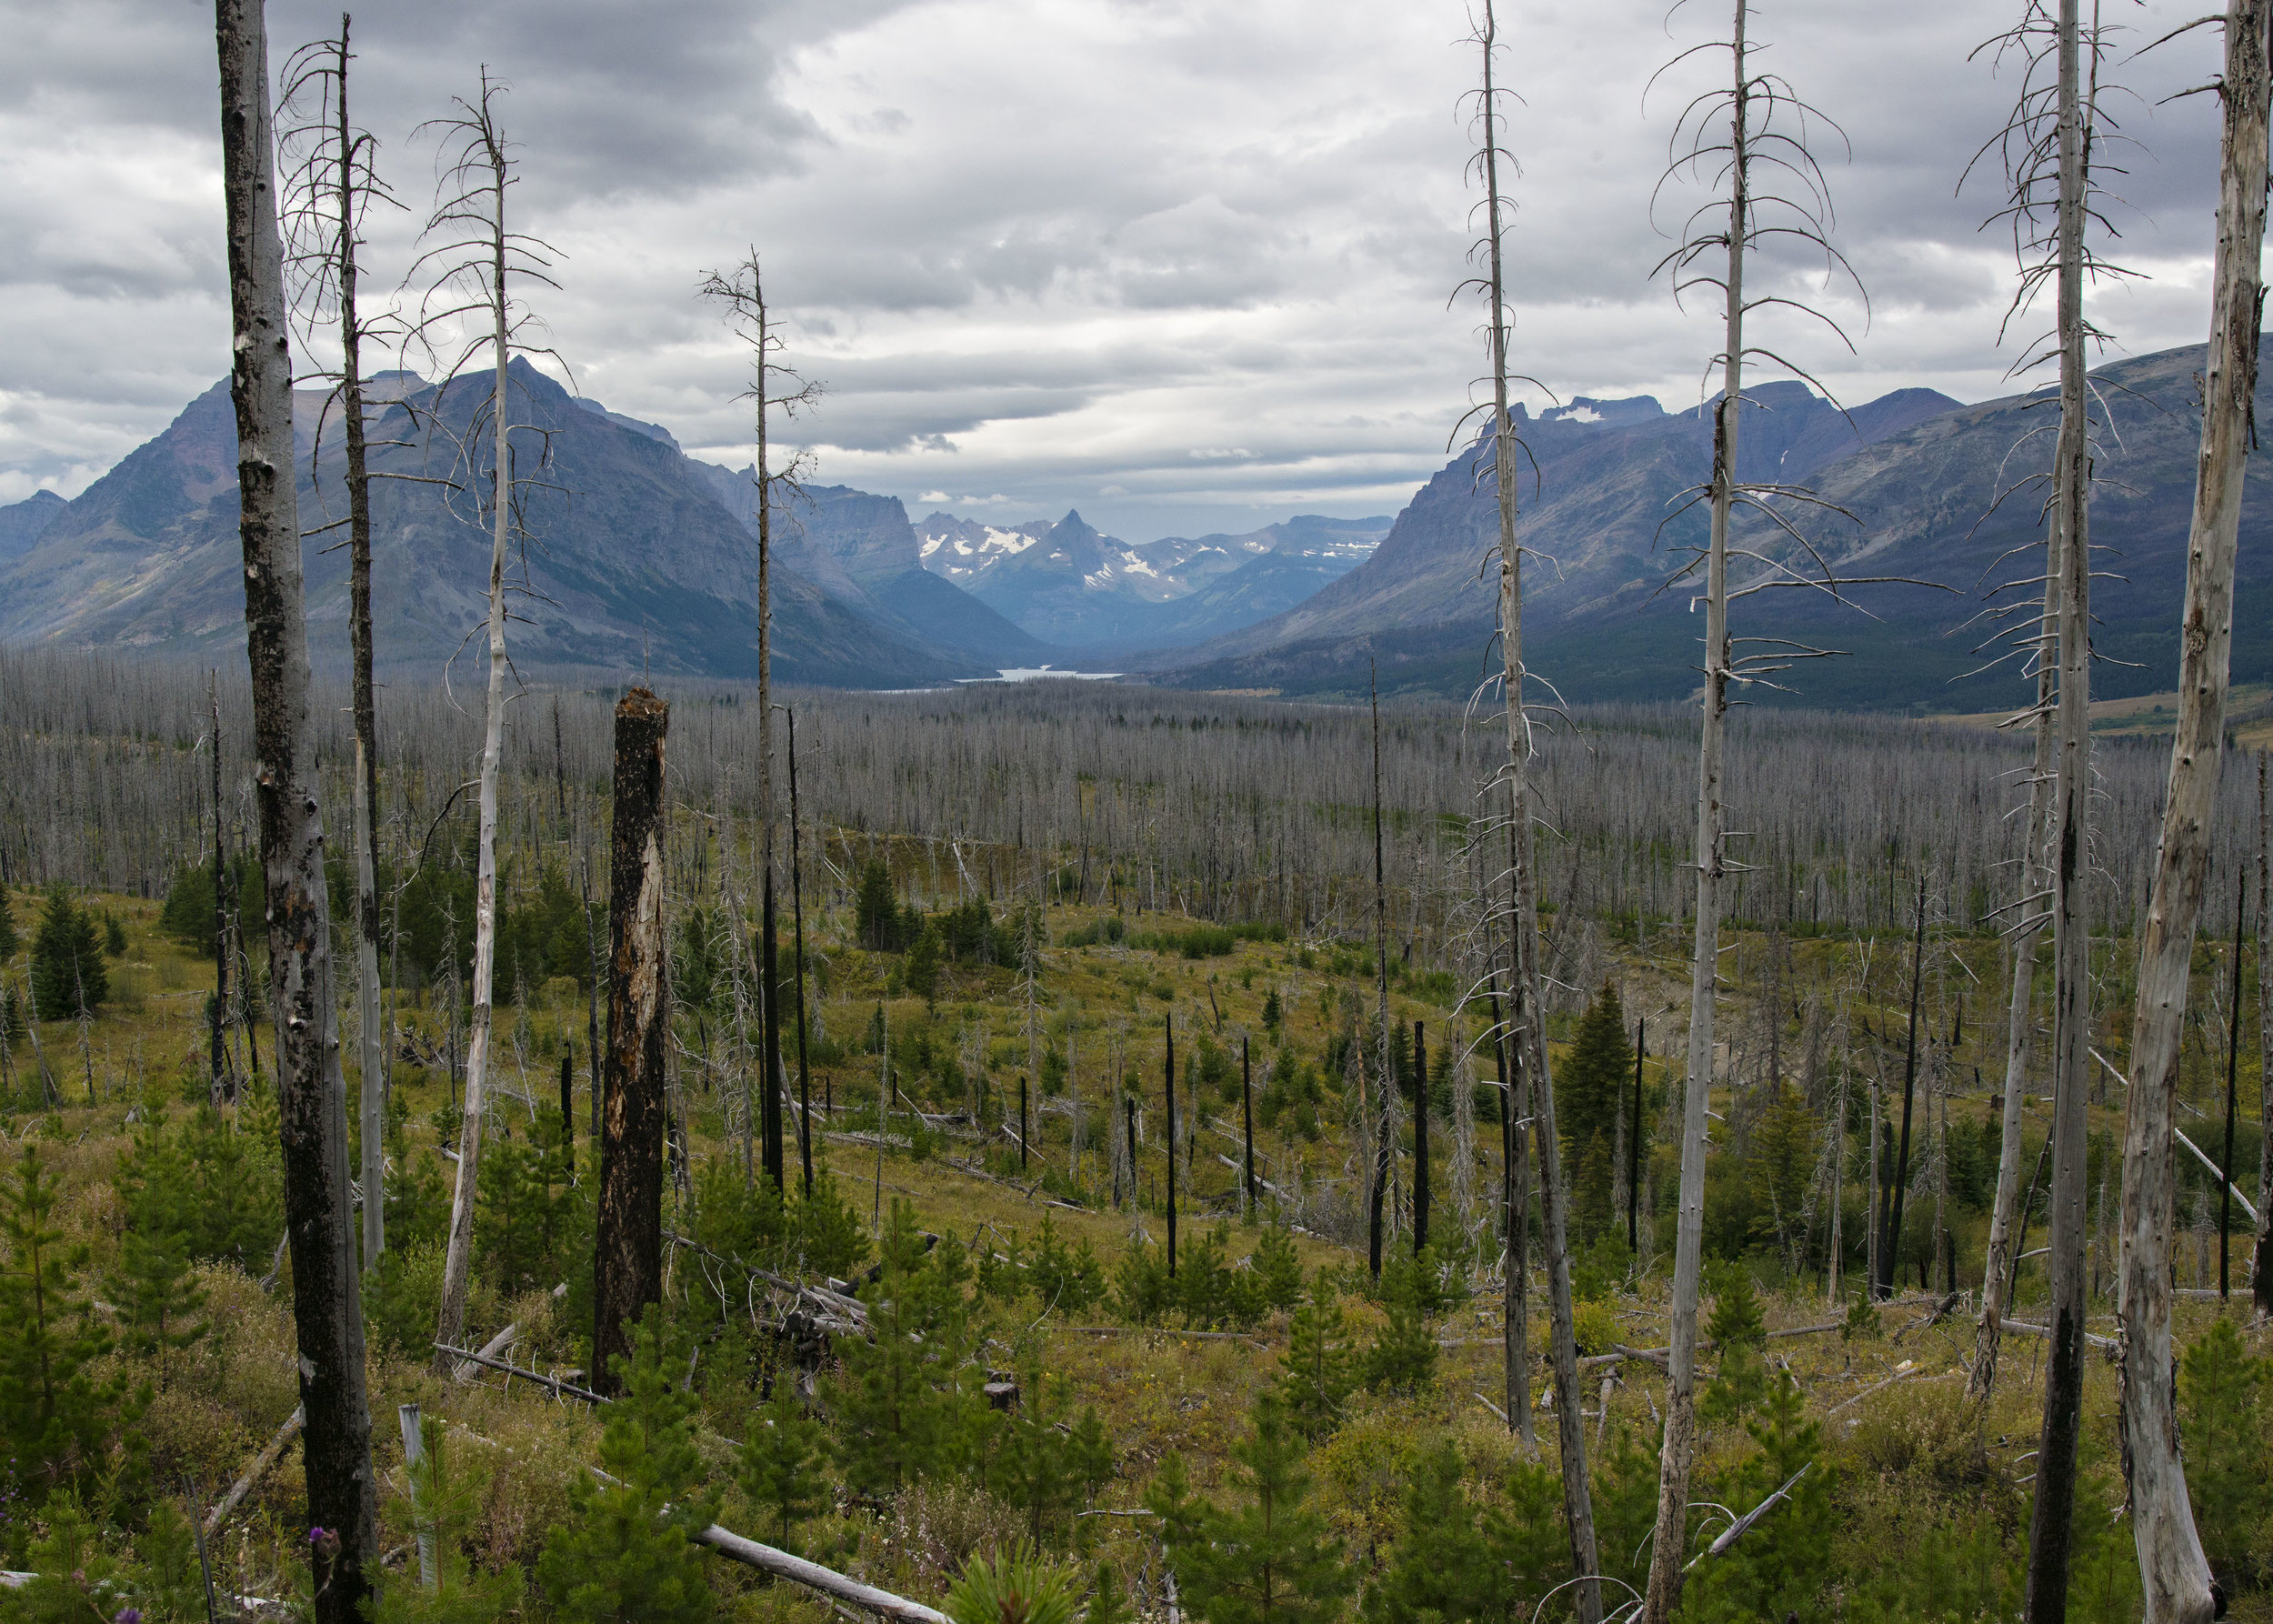 View to the west from just outside Lake Mary entrance to Glacier National Park through fire-scarred forest. Much of Glacier is a forbidding place. You wouldn't want to be here in the winter. Nikon D800, Nikkor 24-120mm lens @ 38mm, ISO 500, f13, 1/640 sec, -2/3 stop exposure adjustment.